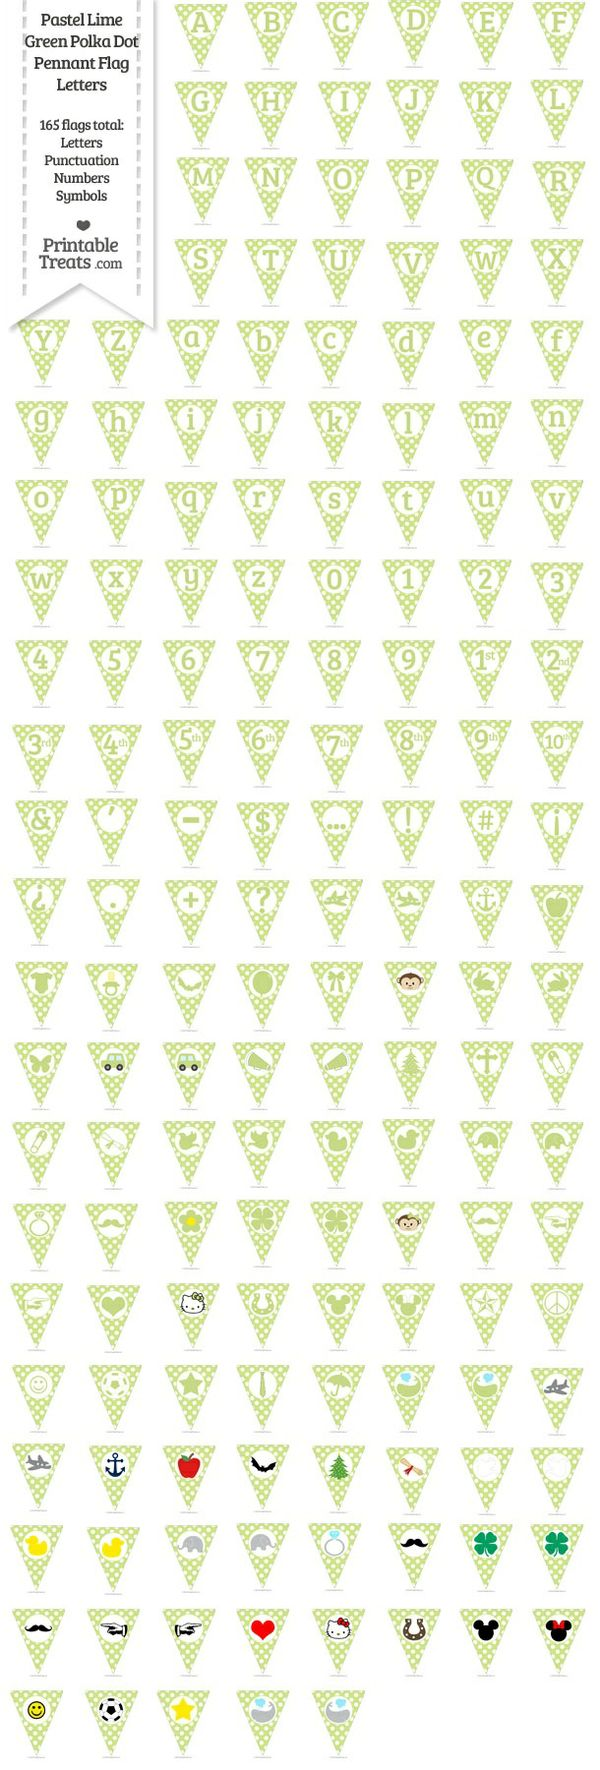 165 Pastel Lime Green Polka Dot Pennant Flag Letters Password